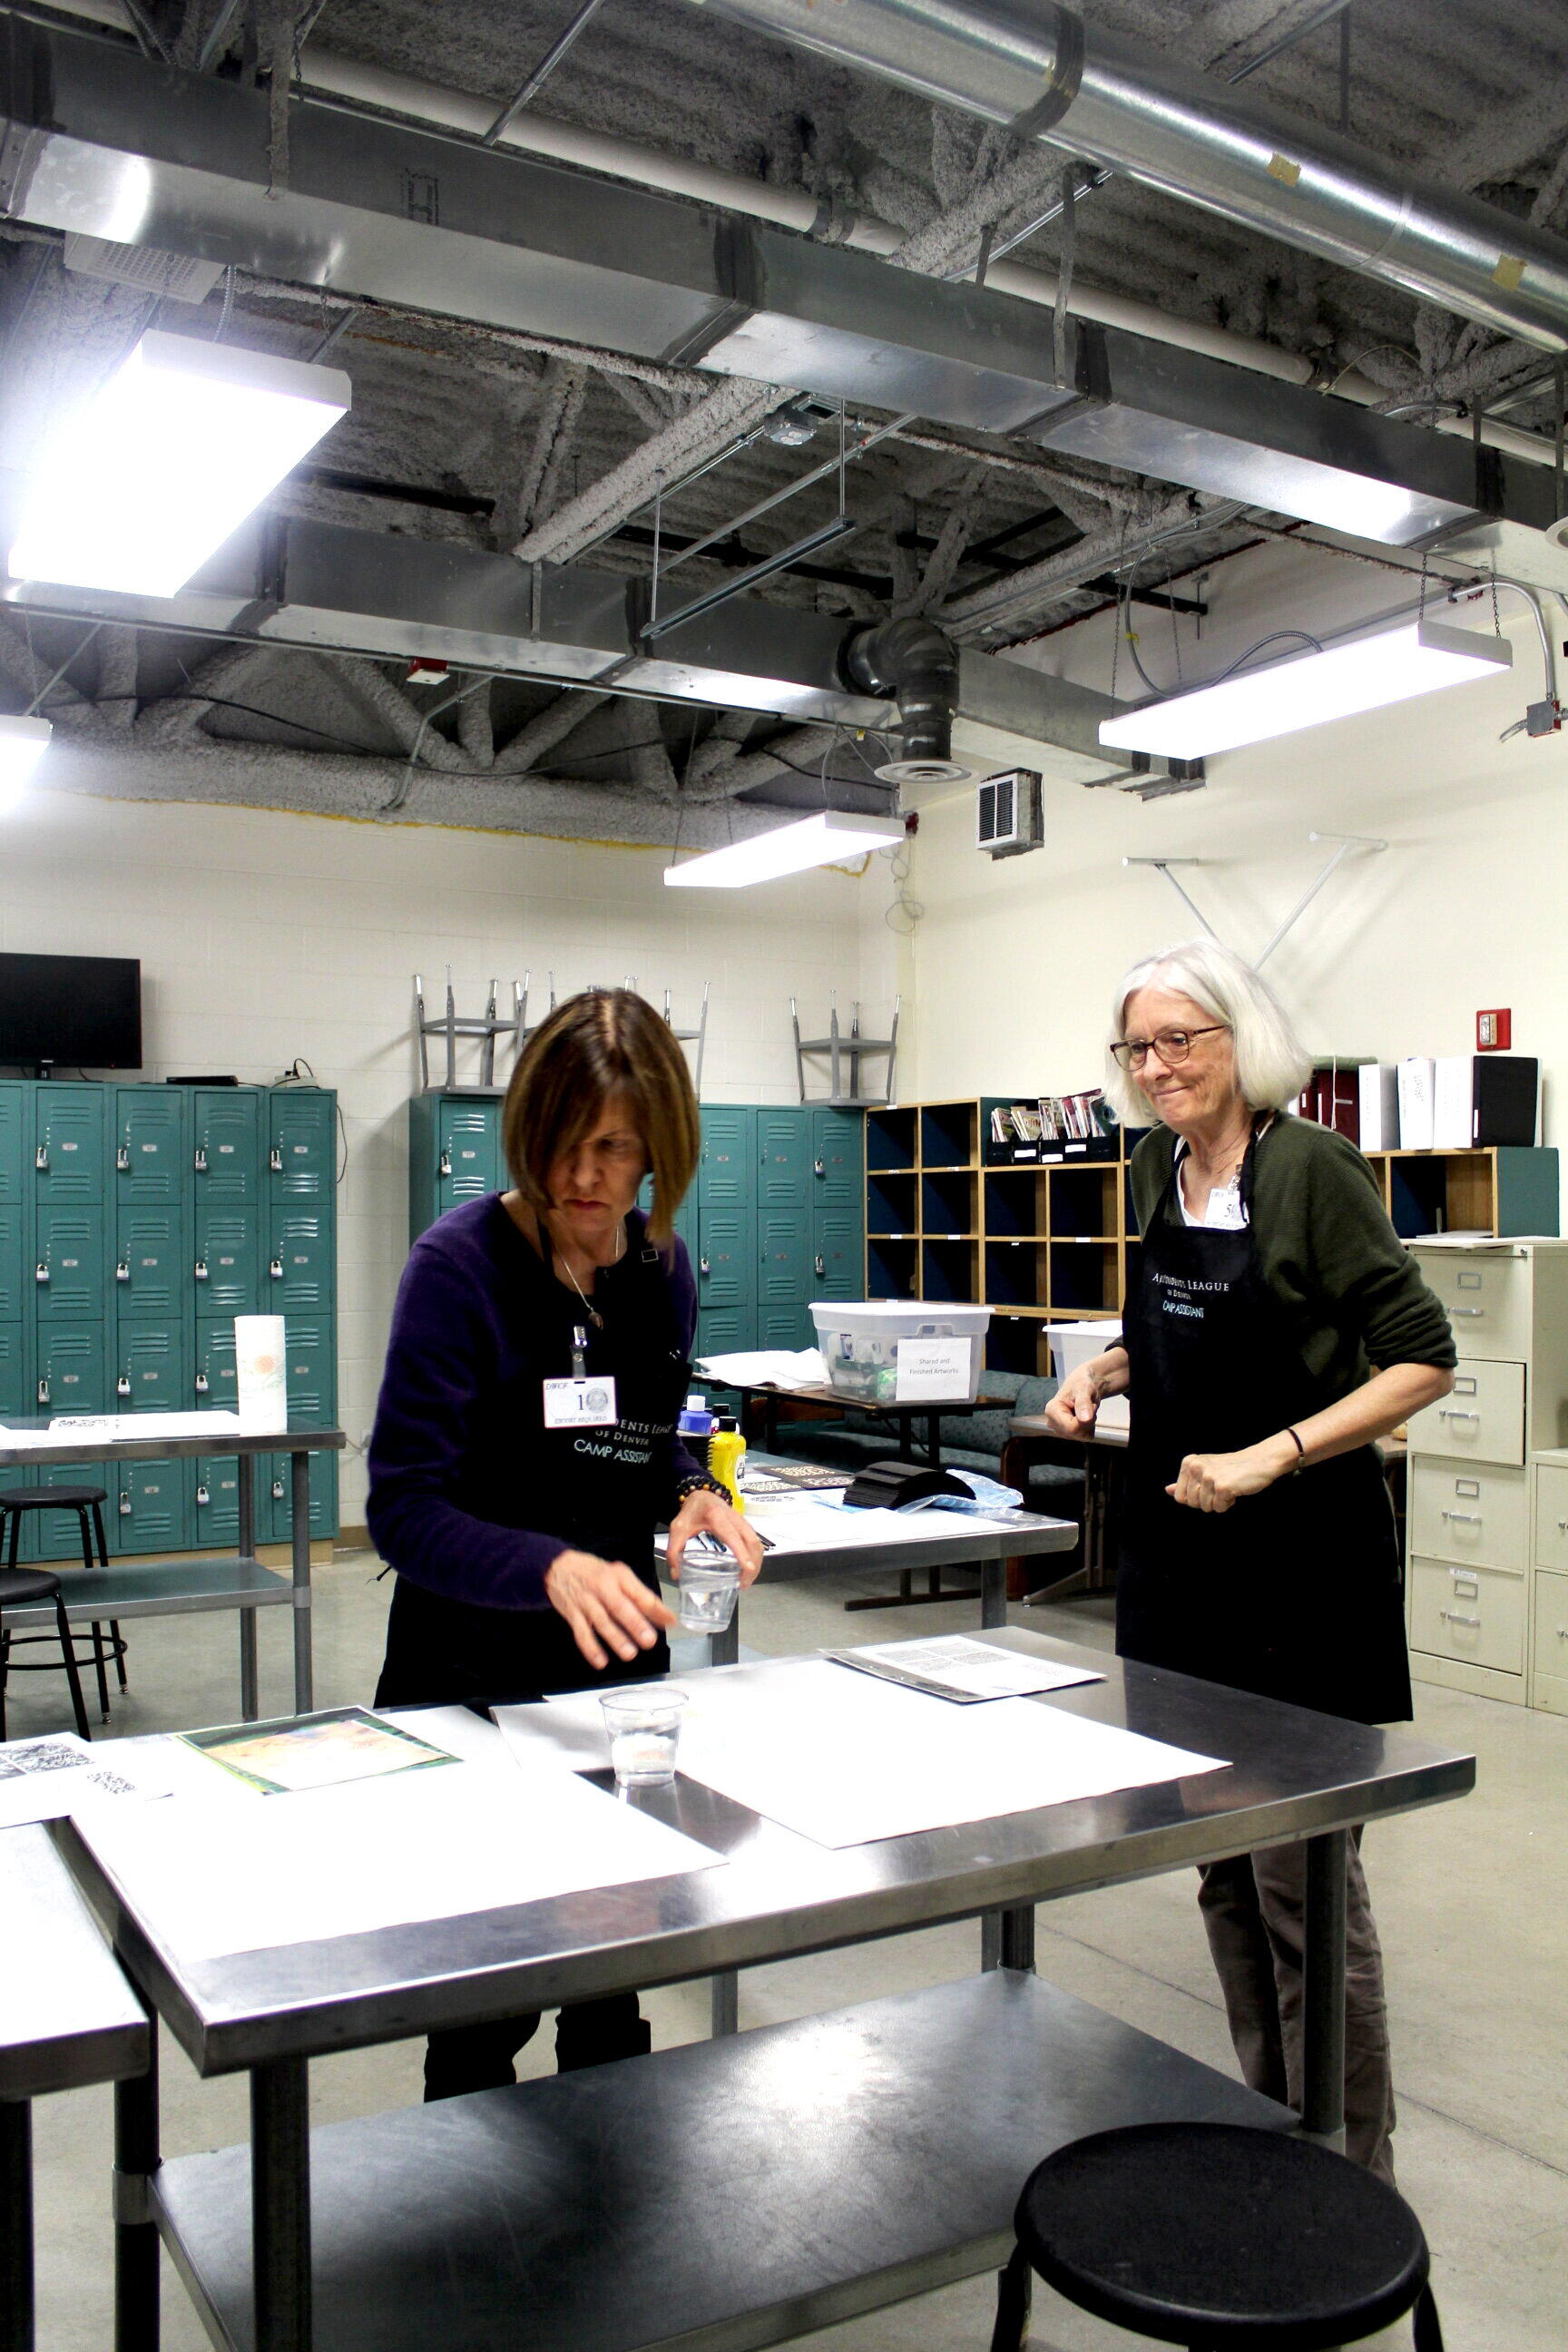 Faculty prepare to teach an Art in Prison workshop inside Denver Women's Correctional Facility. Image courtesy of Art Students League of Denver.